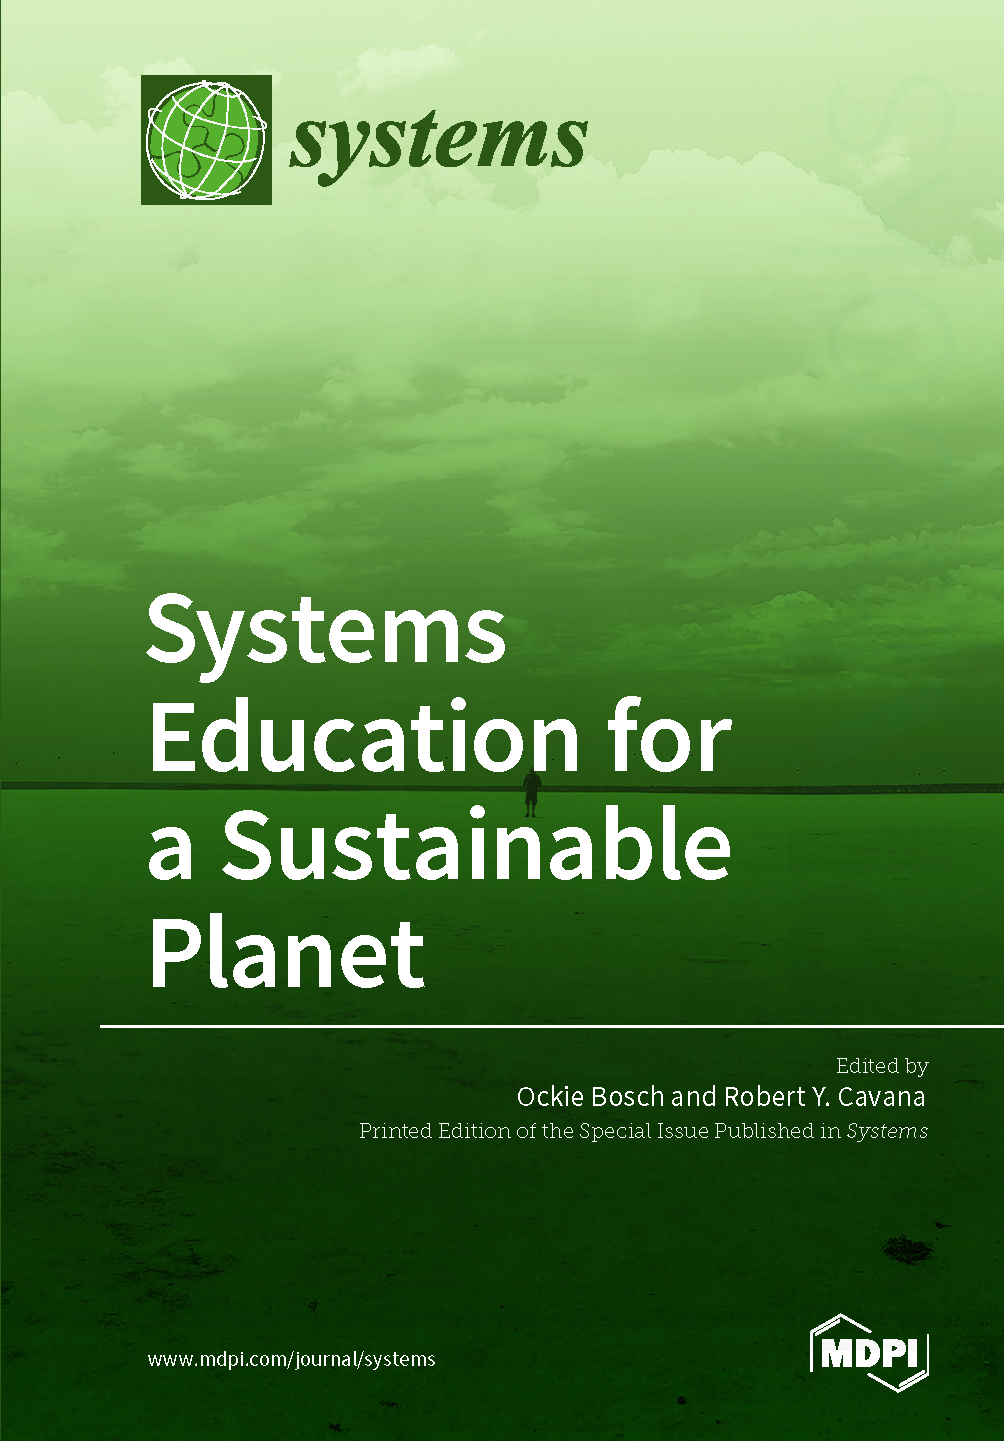 Systems_Education_for_a_Sustainable_Planet.png